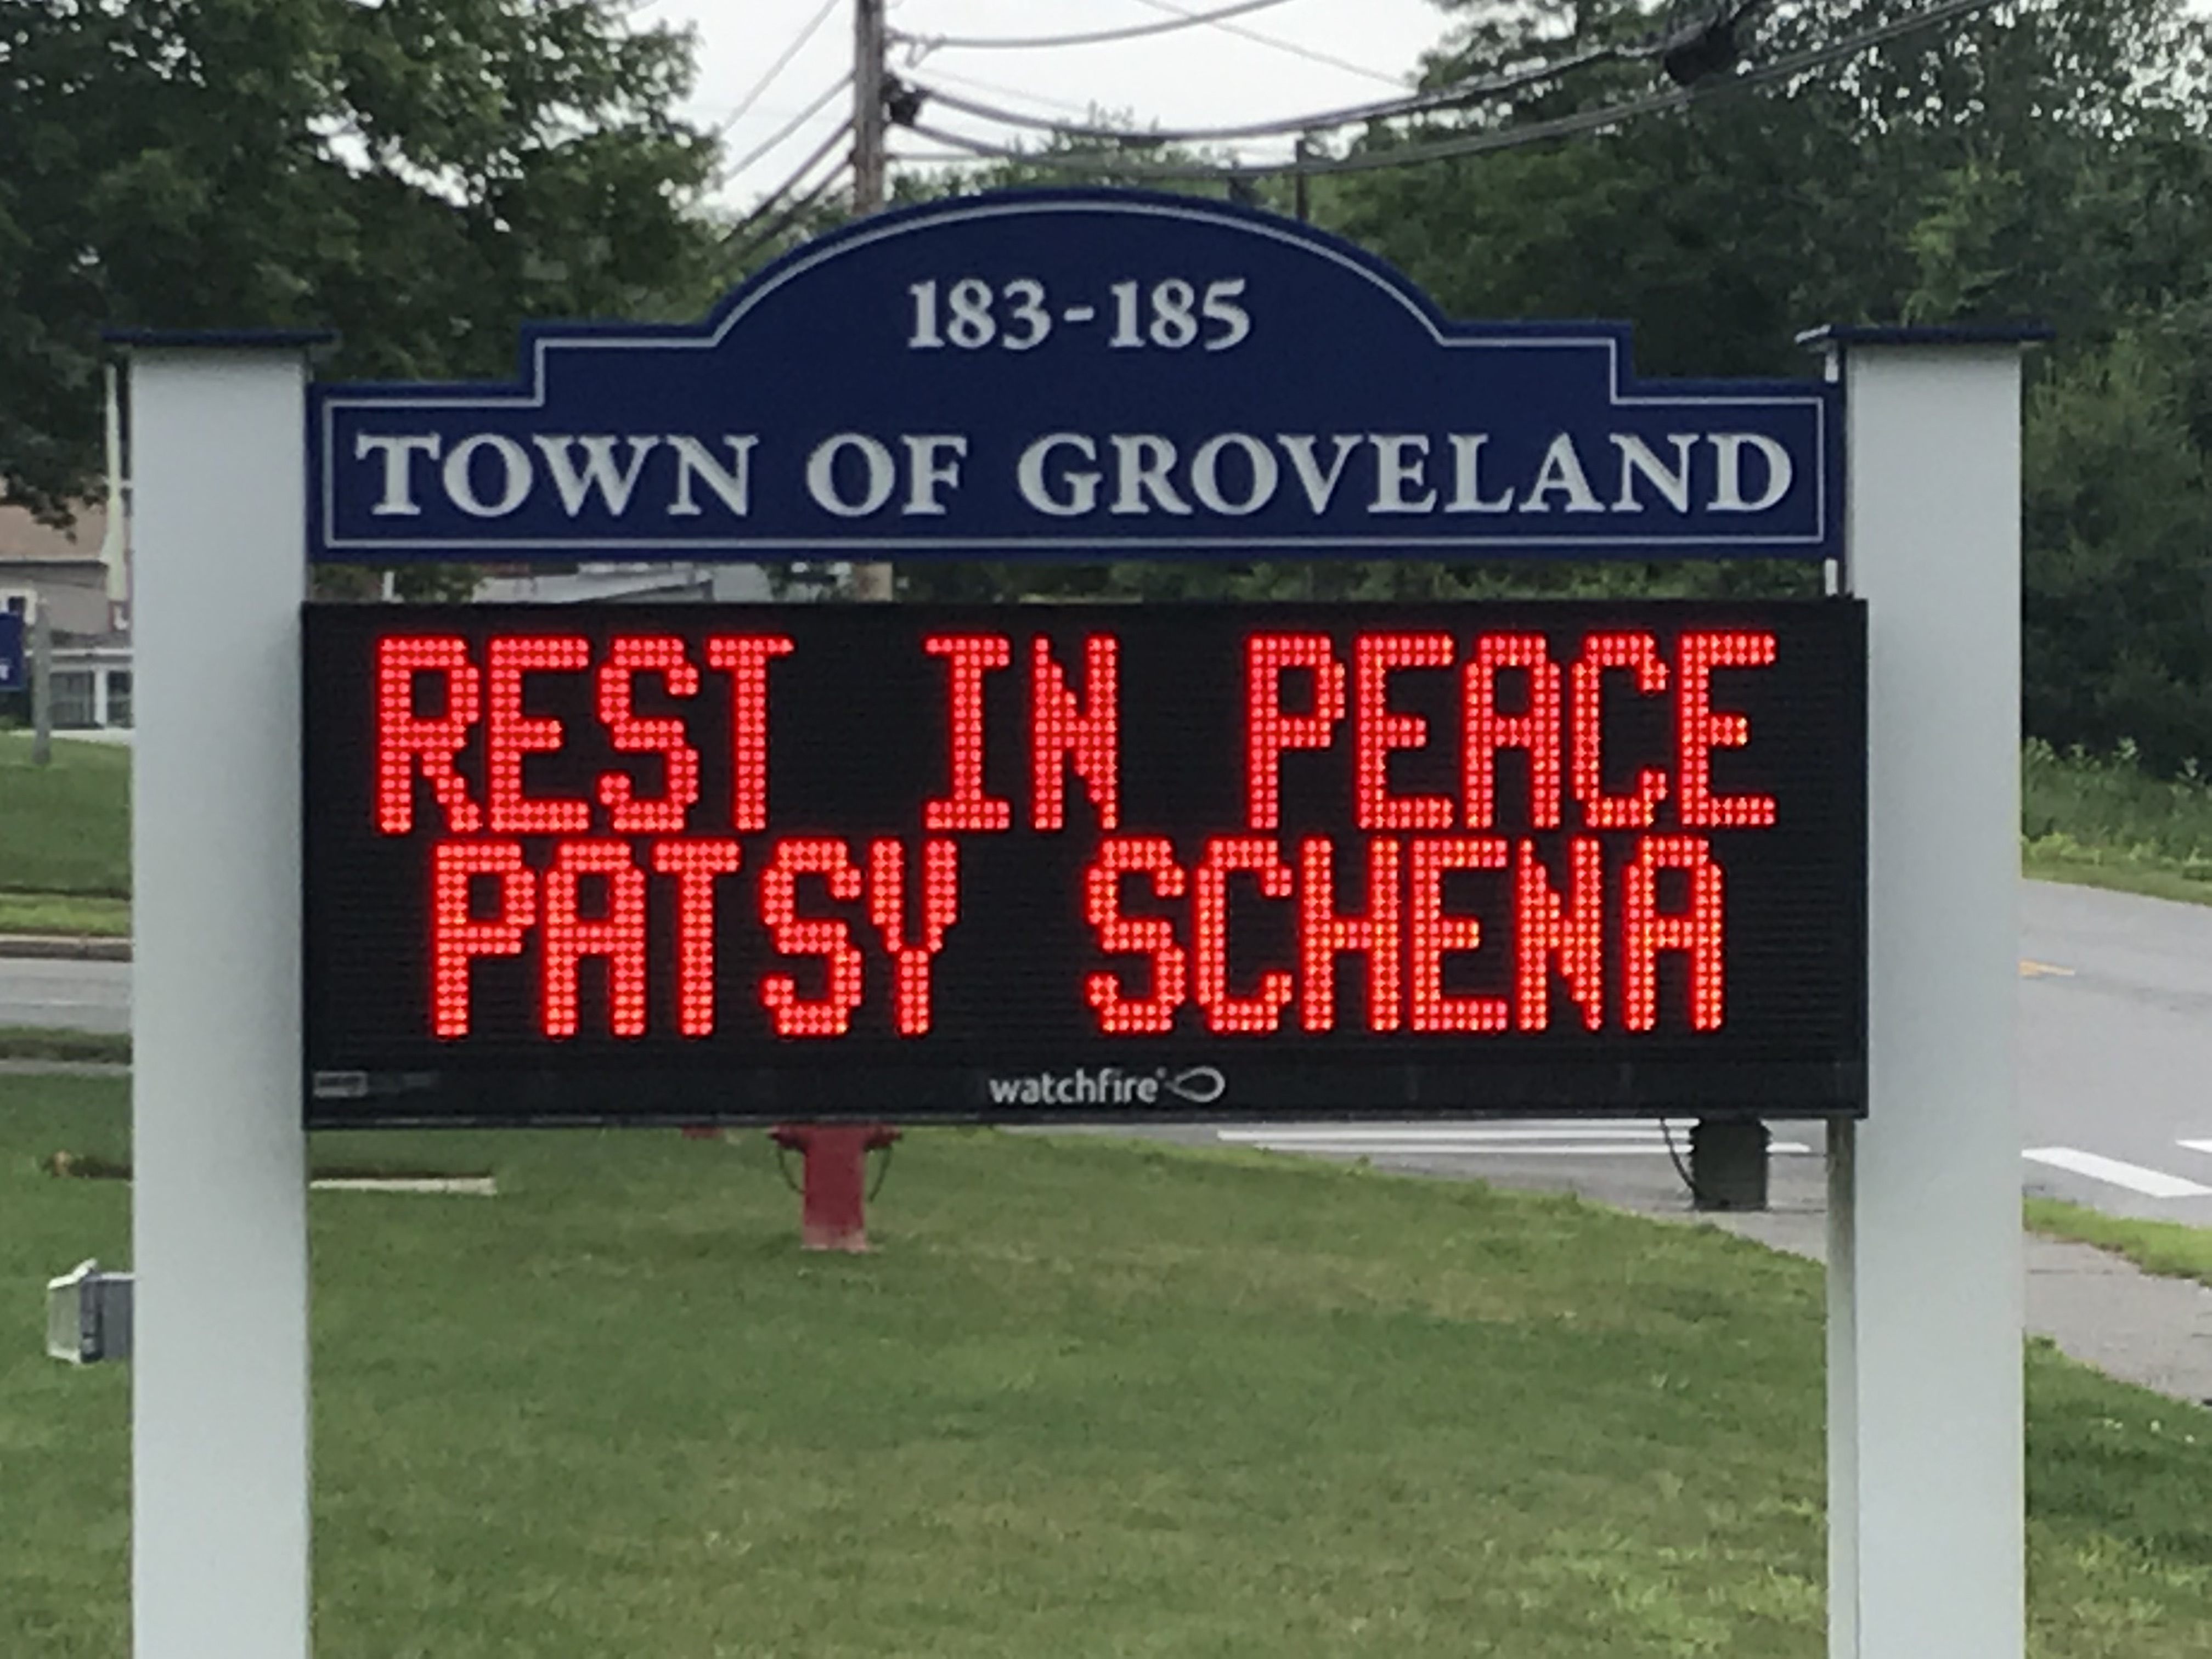 a0939a4c28fd2 Town of Groveland stunned by slaying of 82-year-old man - The Boston ...